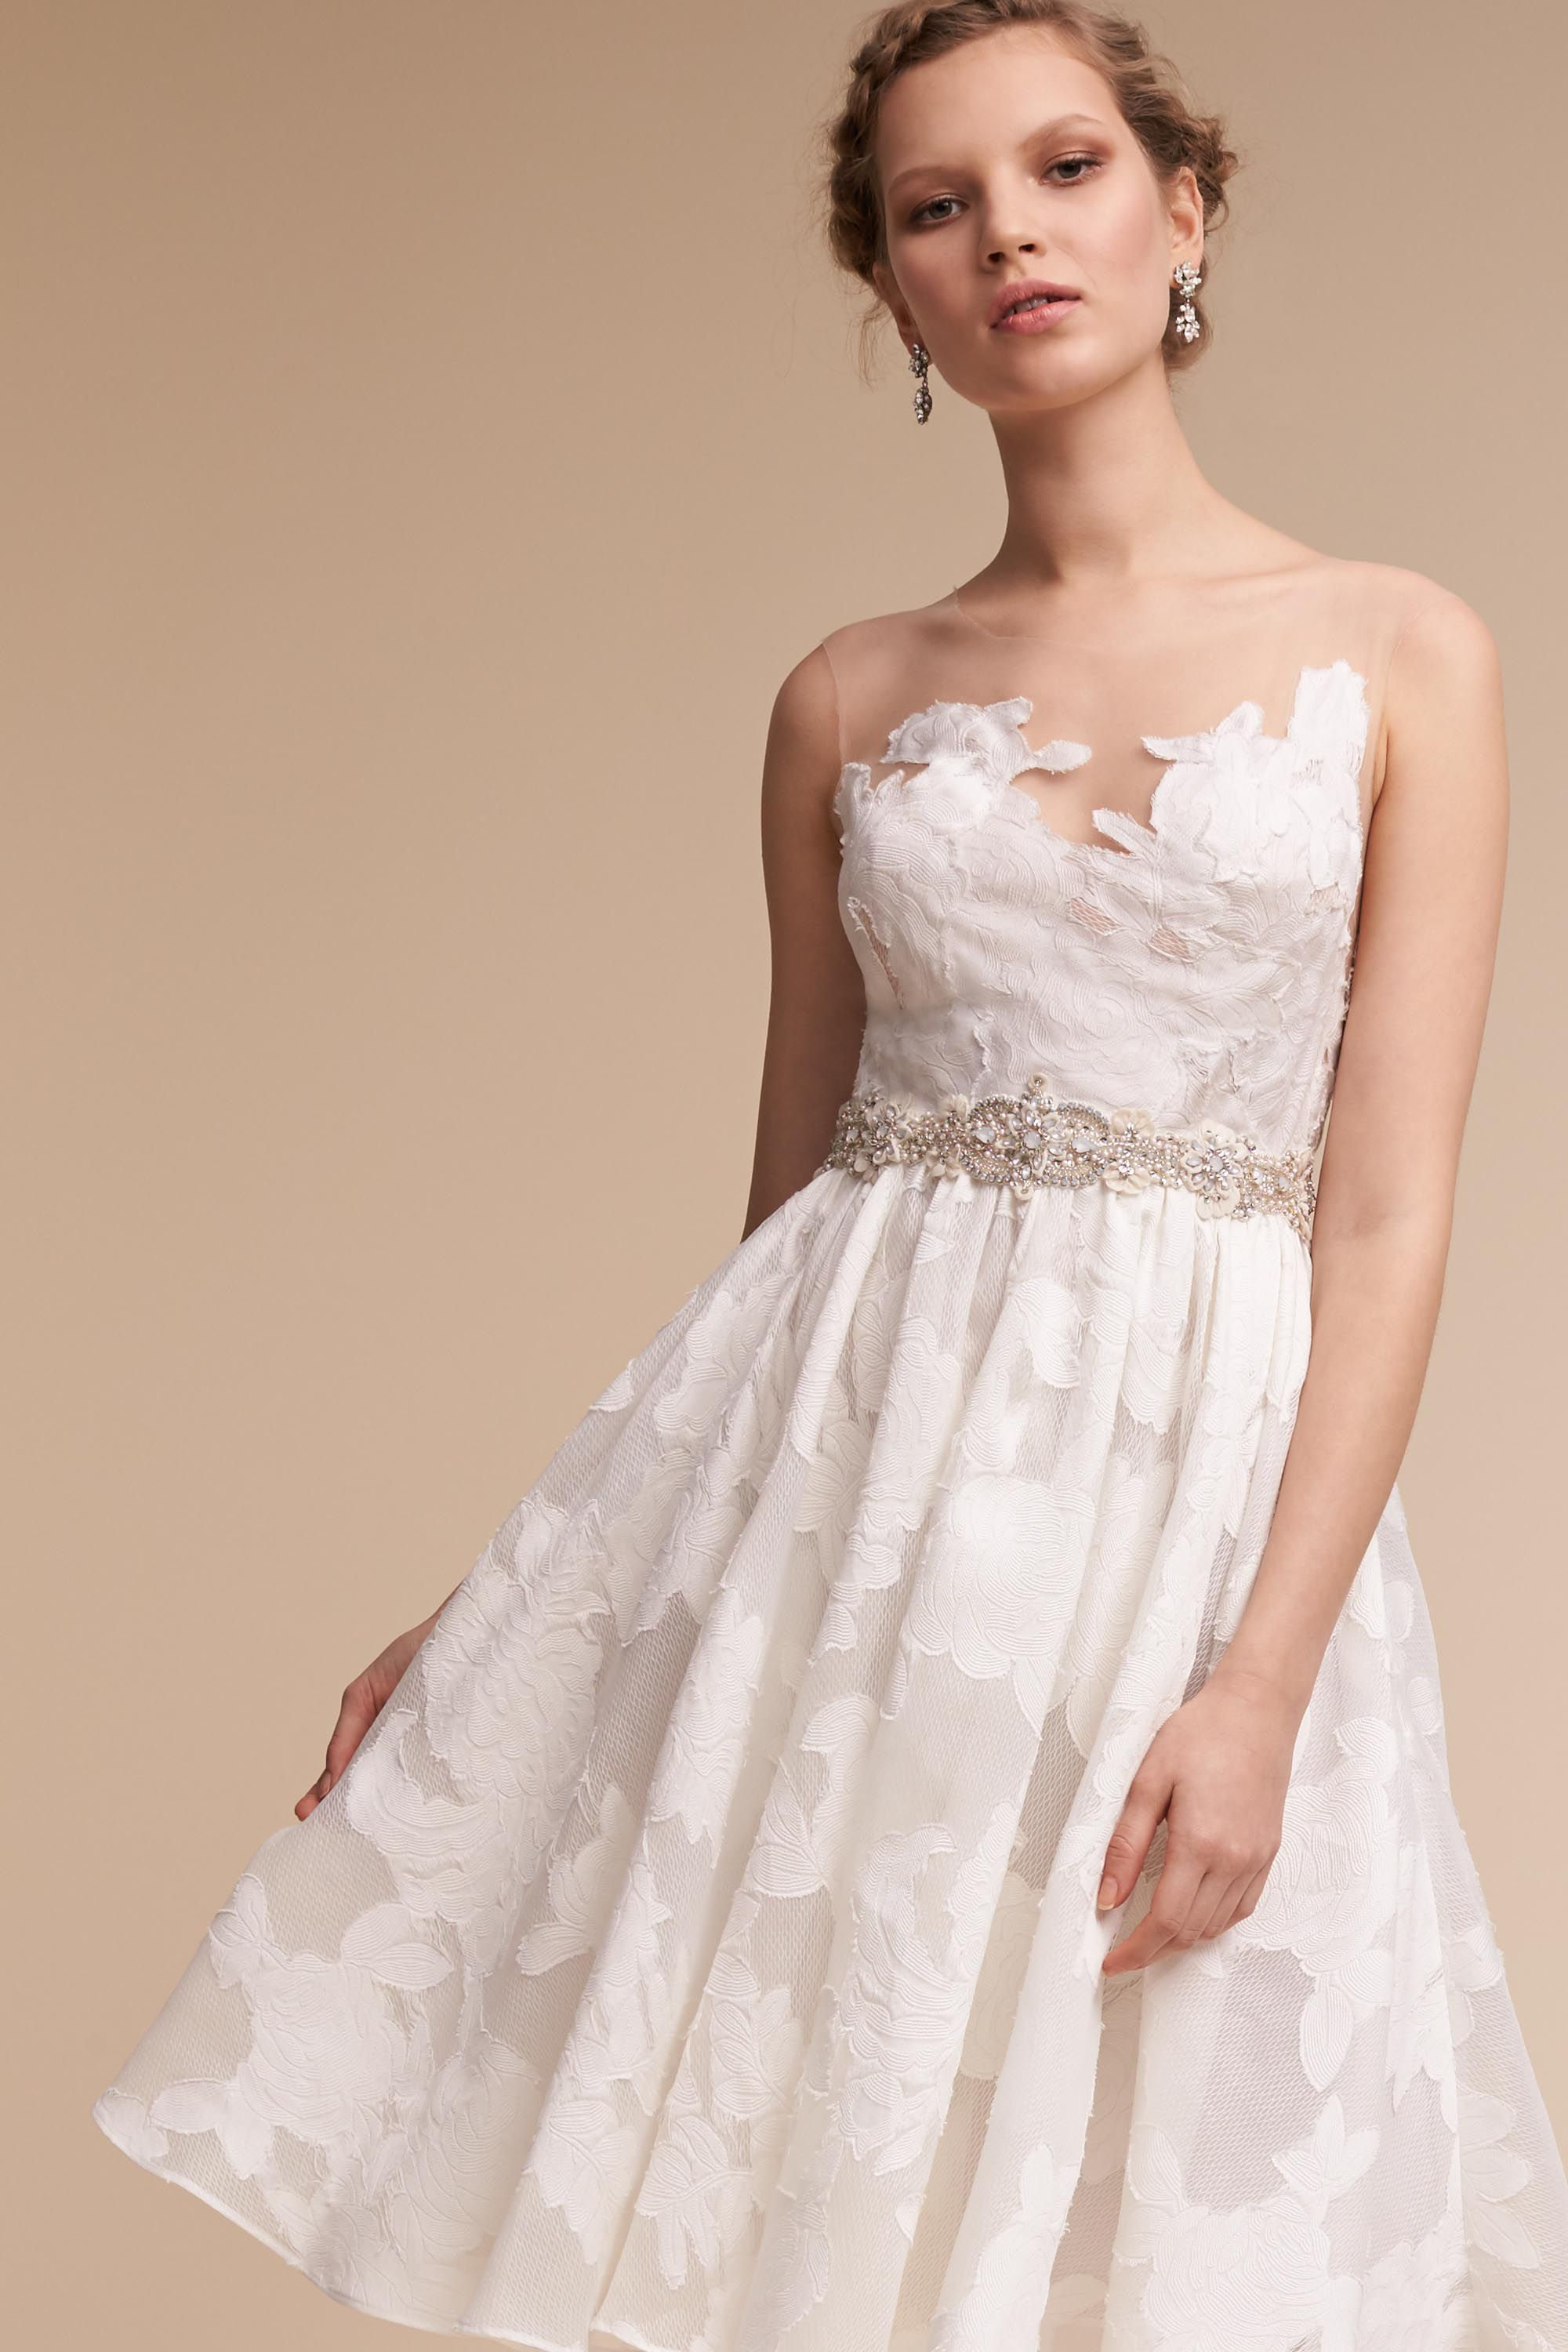 Romantic BHLDN Wedding Rehearsal Dresses - Colletta Dress